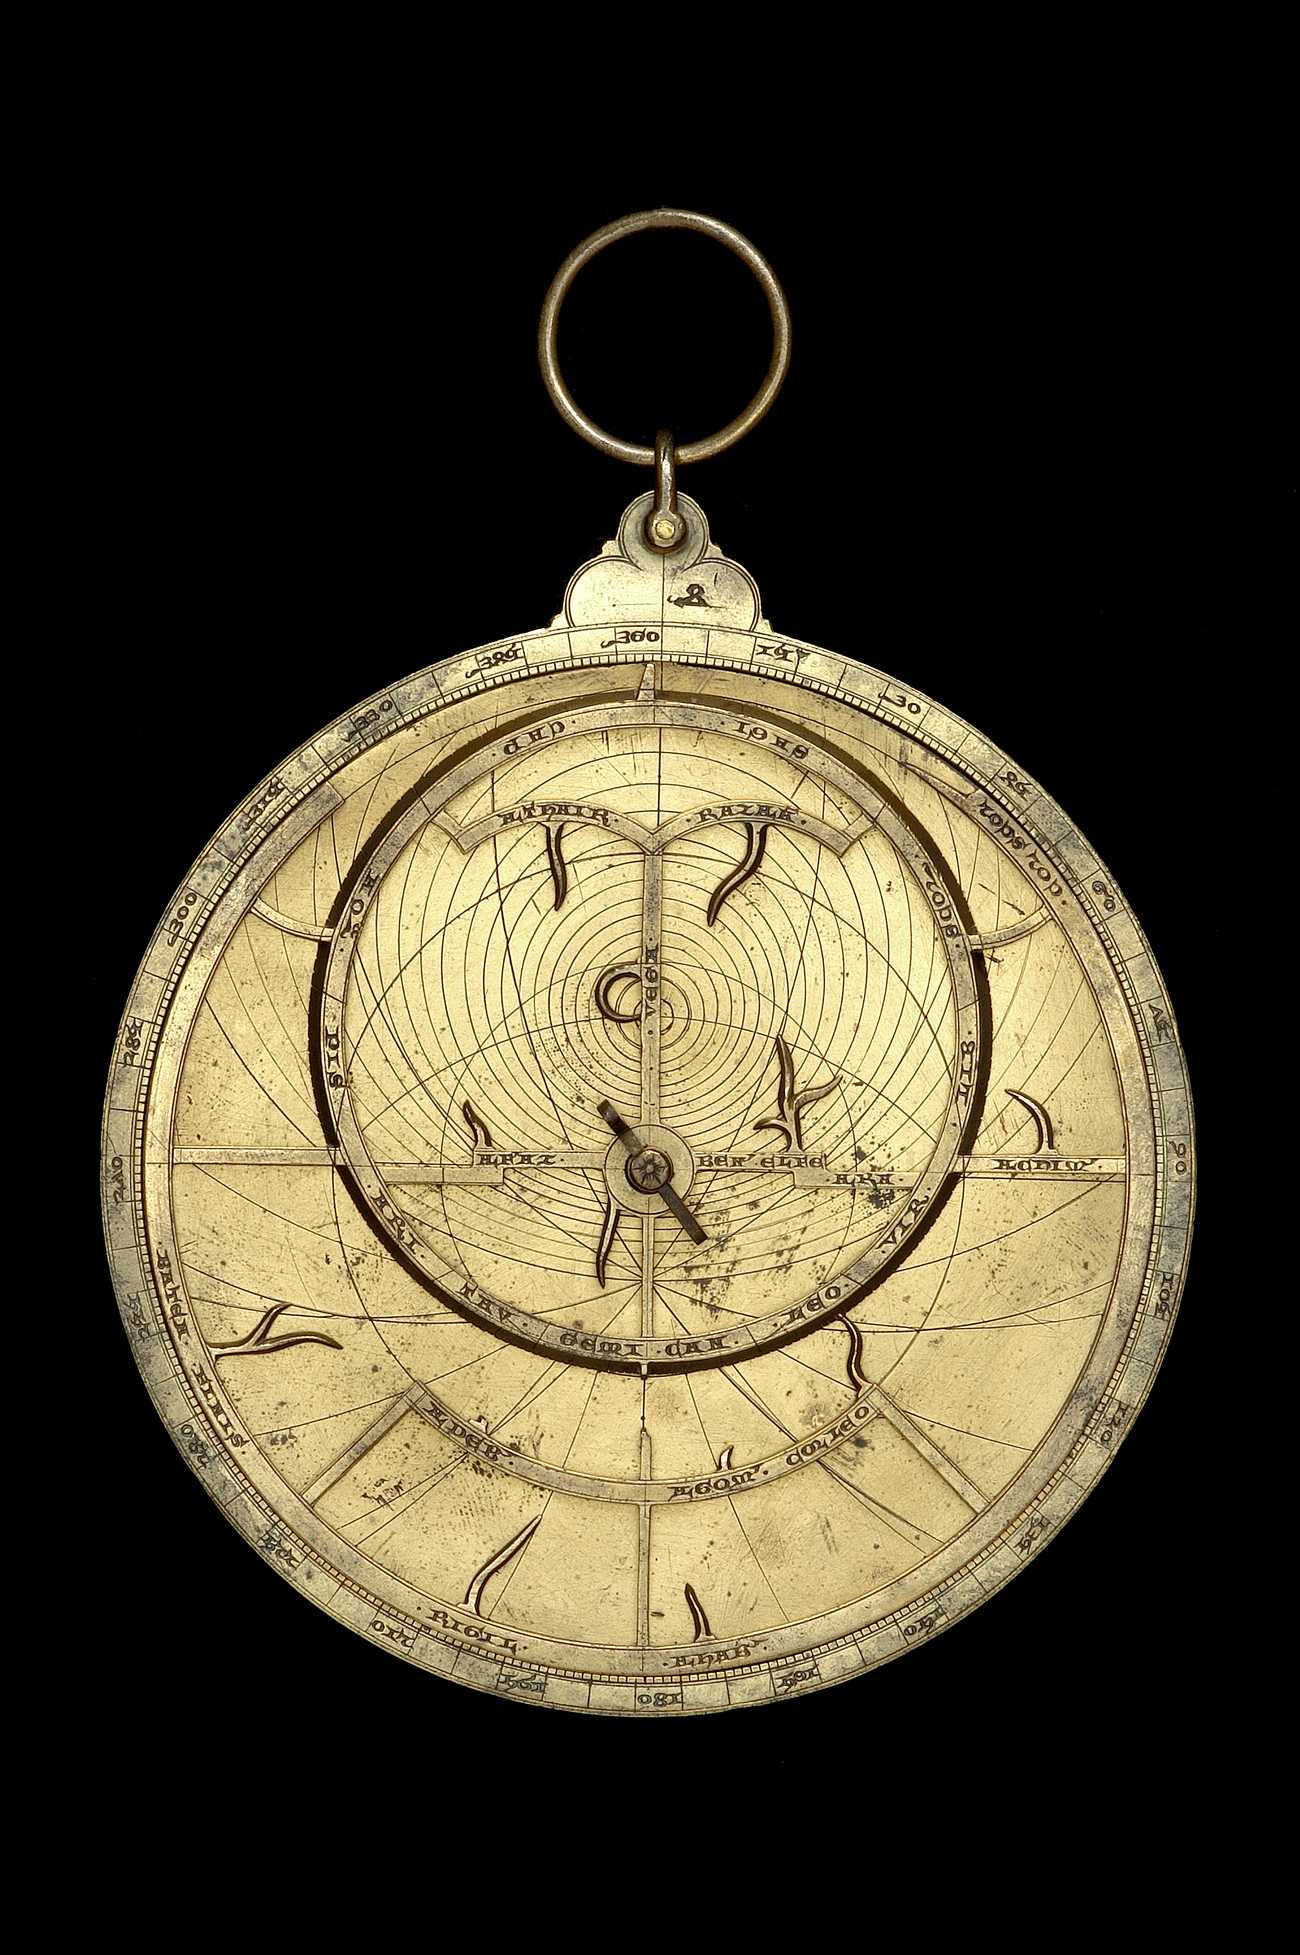 Astrolabe Image Report Inventory Number 52473: Astrolabe Report (inventory Number 54330